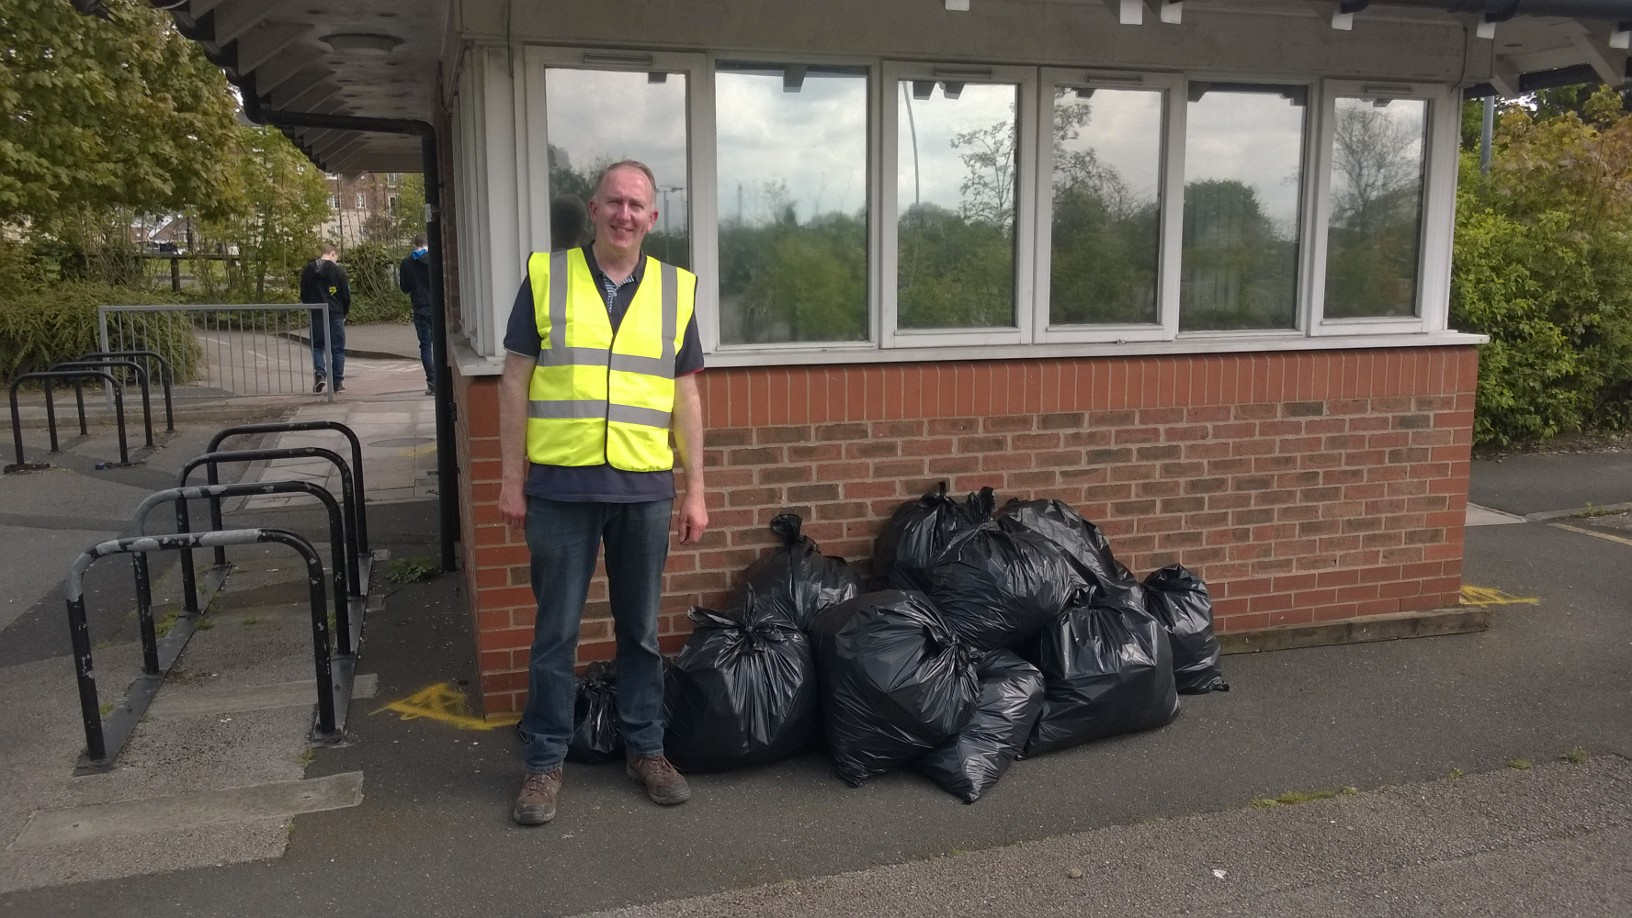 Previous litter picks in the area near the College have yielded a bumper haul of litter